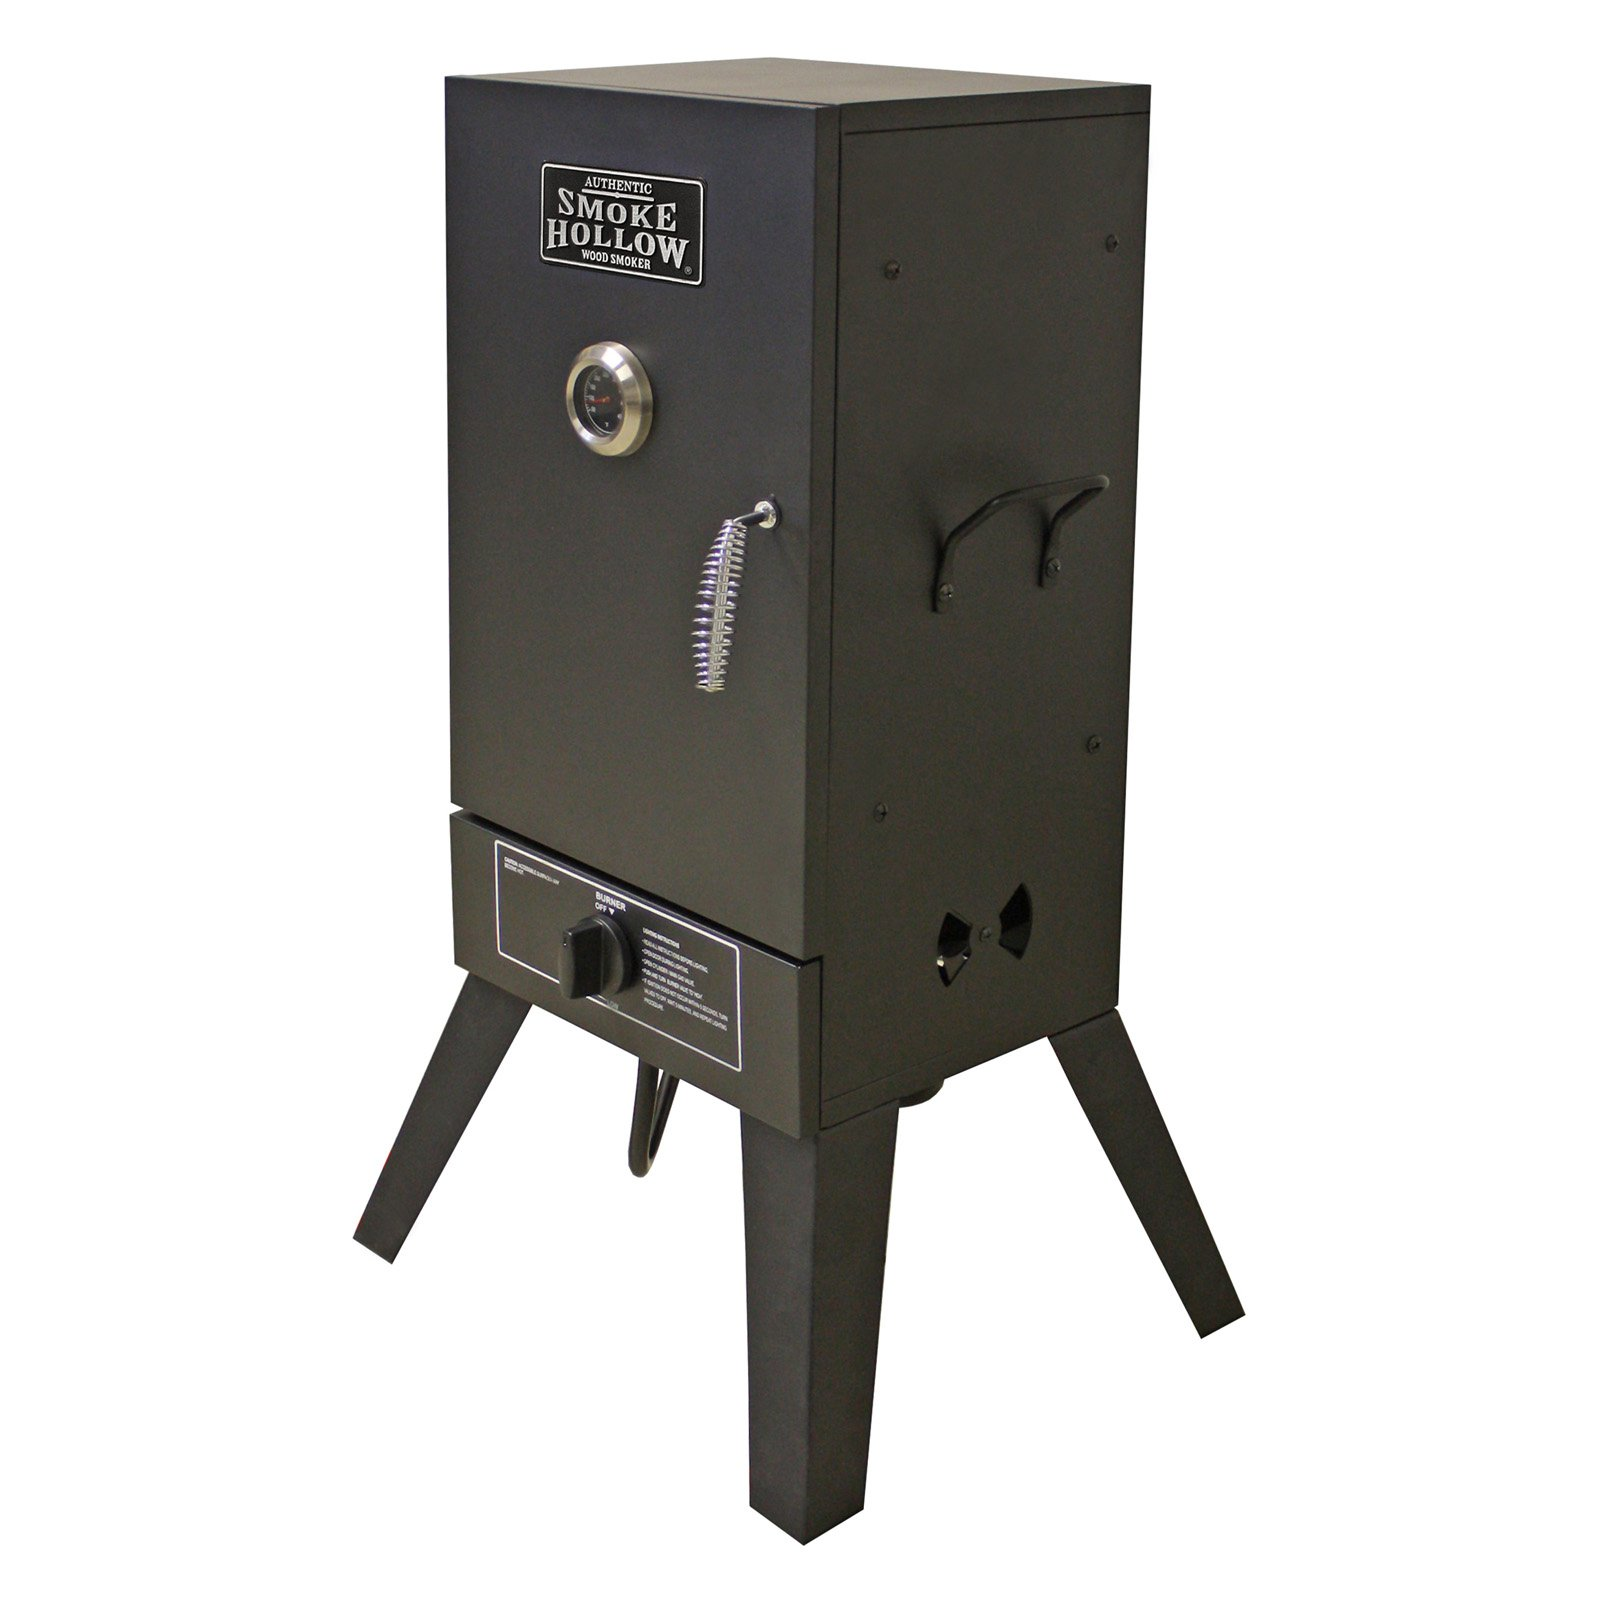 Smoke Hollow 26 in. Propane Smoker